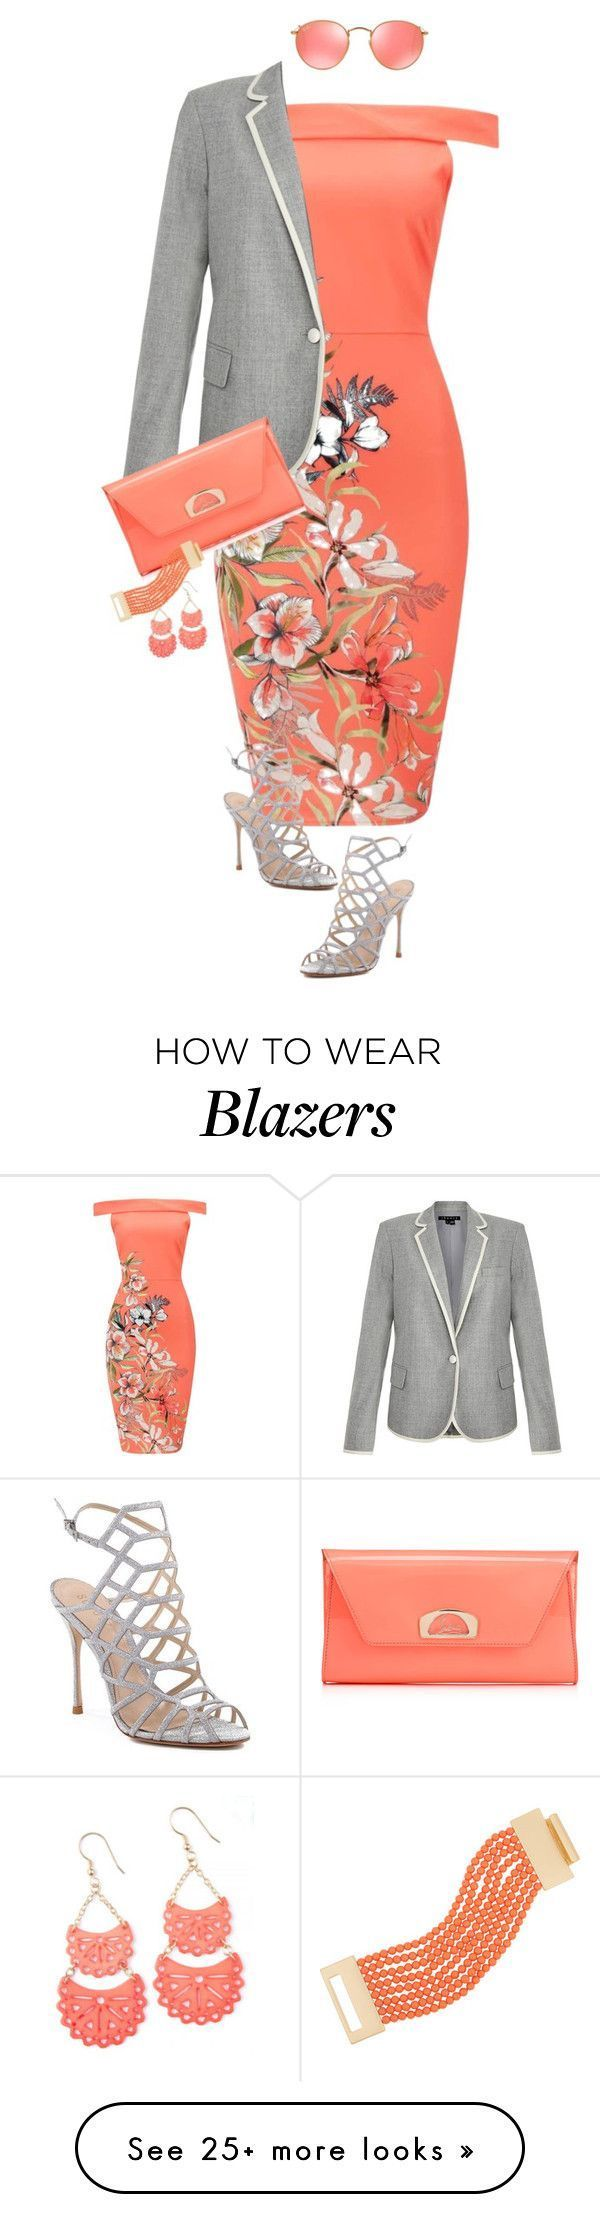 """""""1265"""" by mljilina on Polyvore featuring Theory, Schutz, Ray-Ban, Christian Louboutin and Kenneth Jay Lane"""